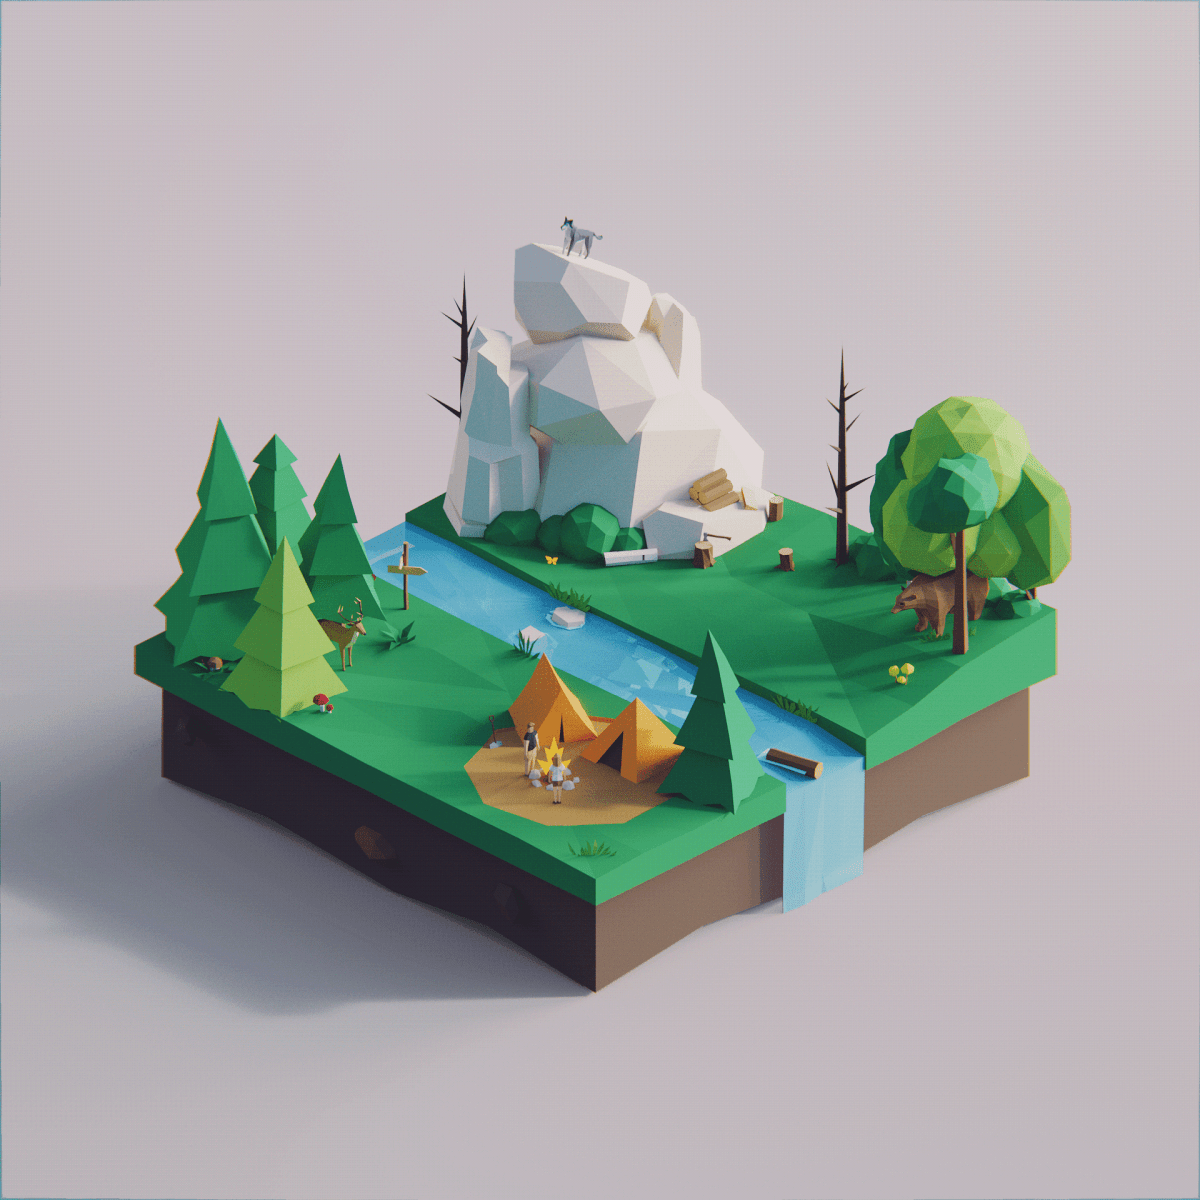 low-poly-world-moss-and-fog-11